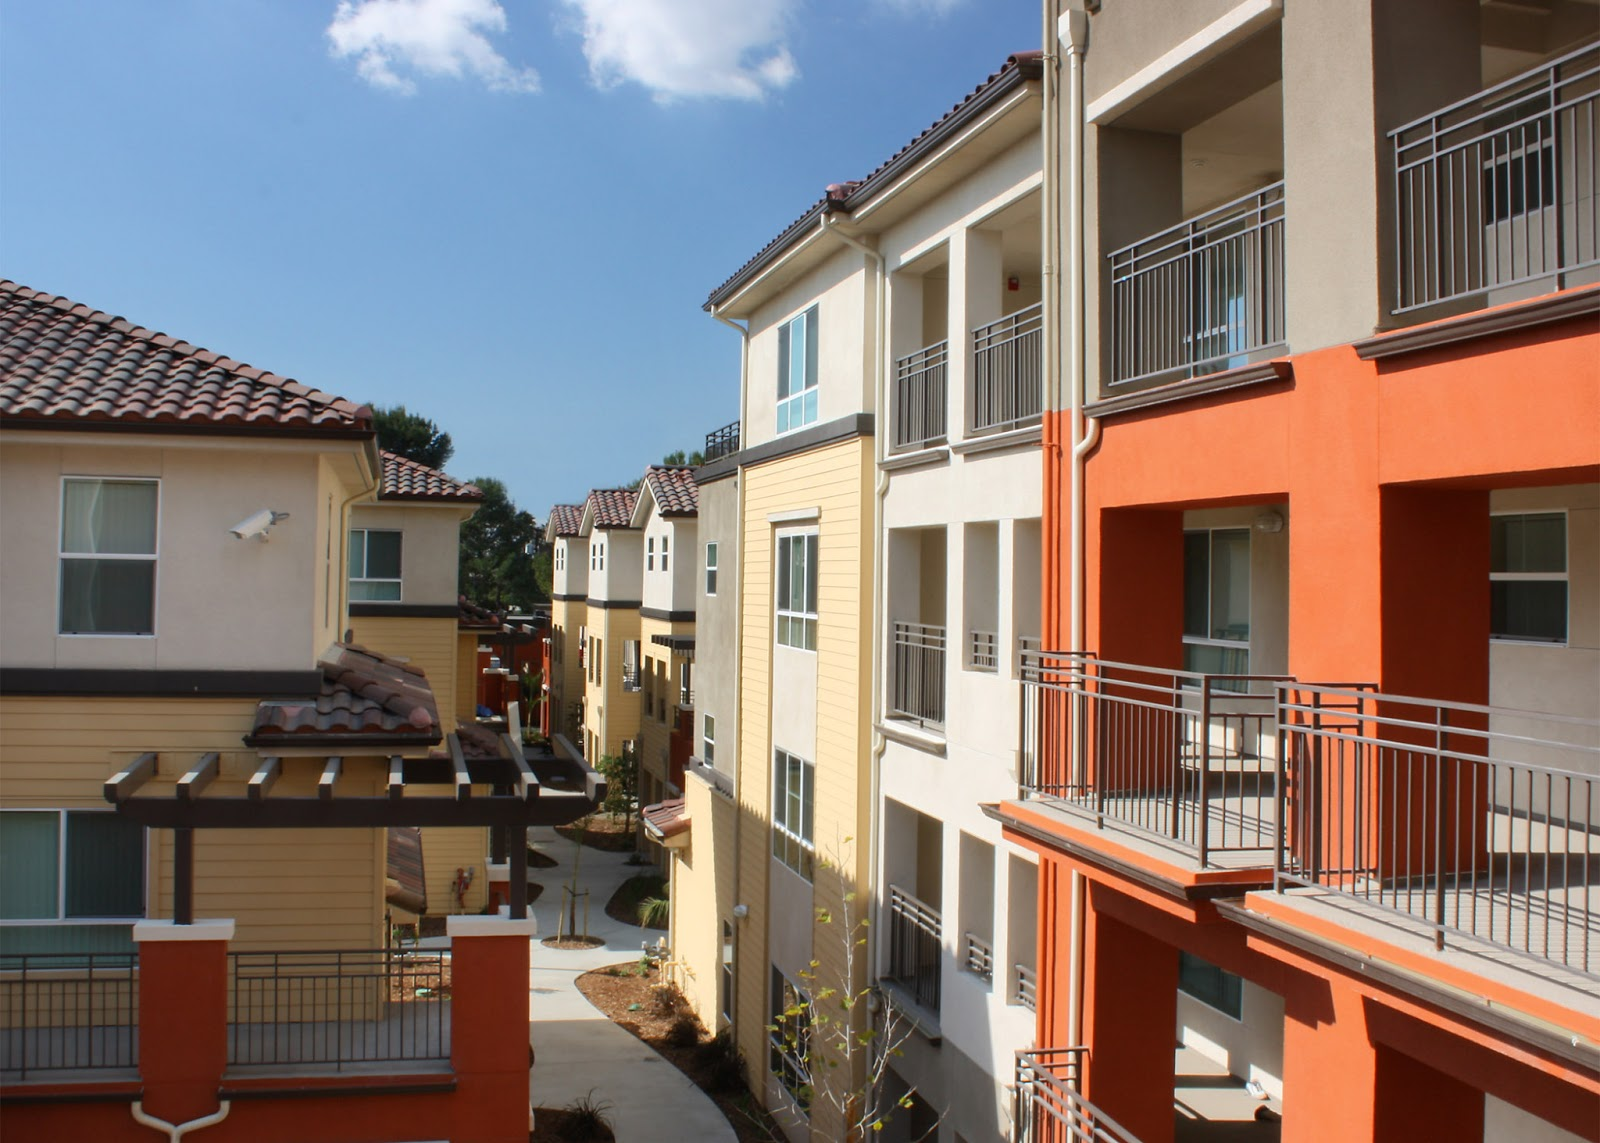 Conflicting Affordable Housing Policies